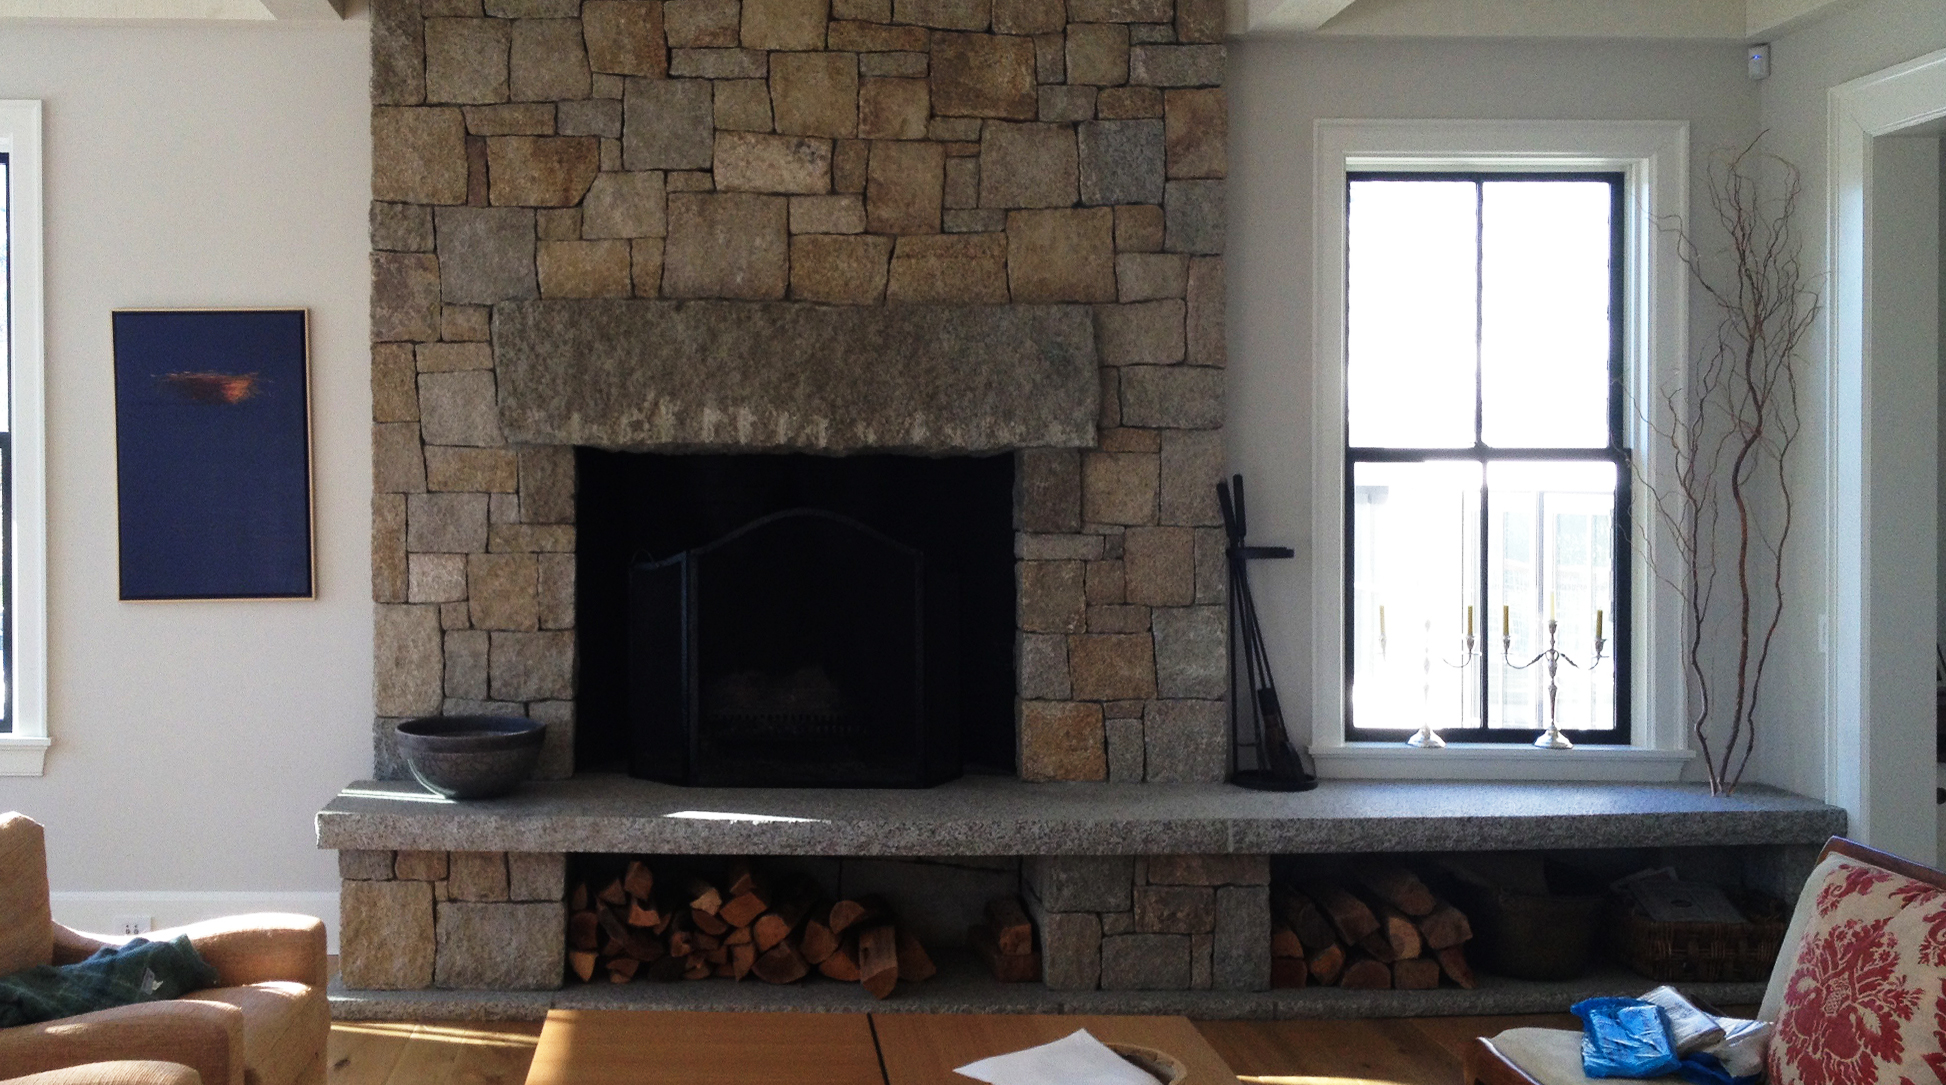 SplitFaceFireplace